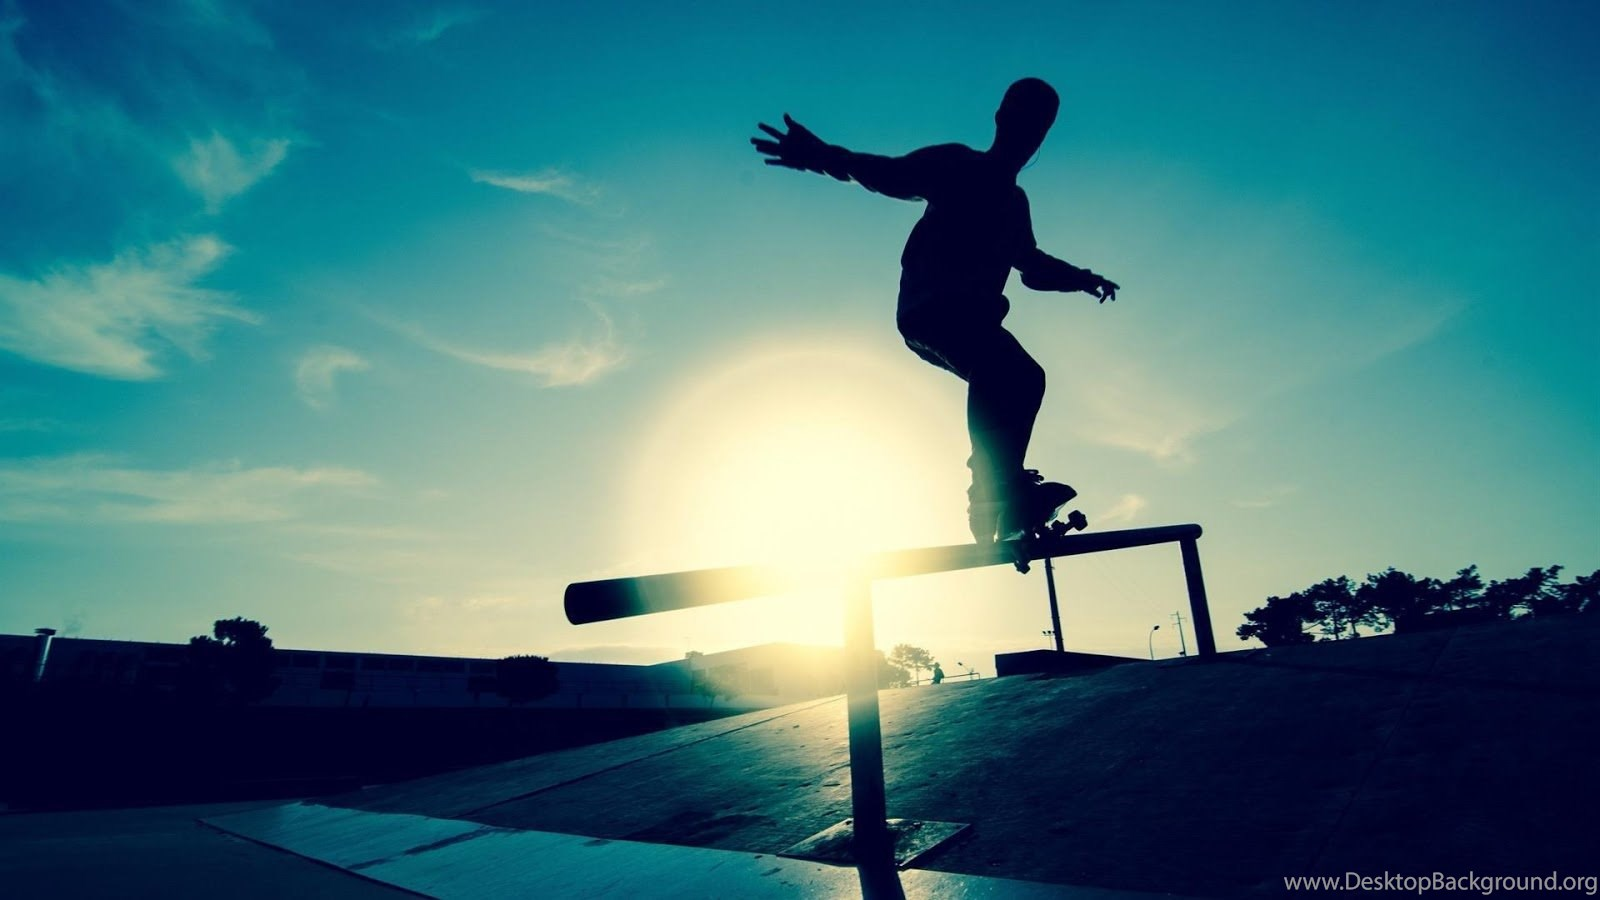 skateboard wallpapers android apps on google play desktop background